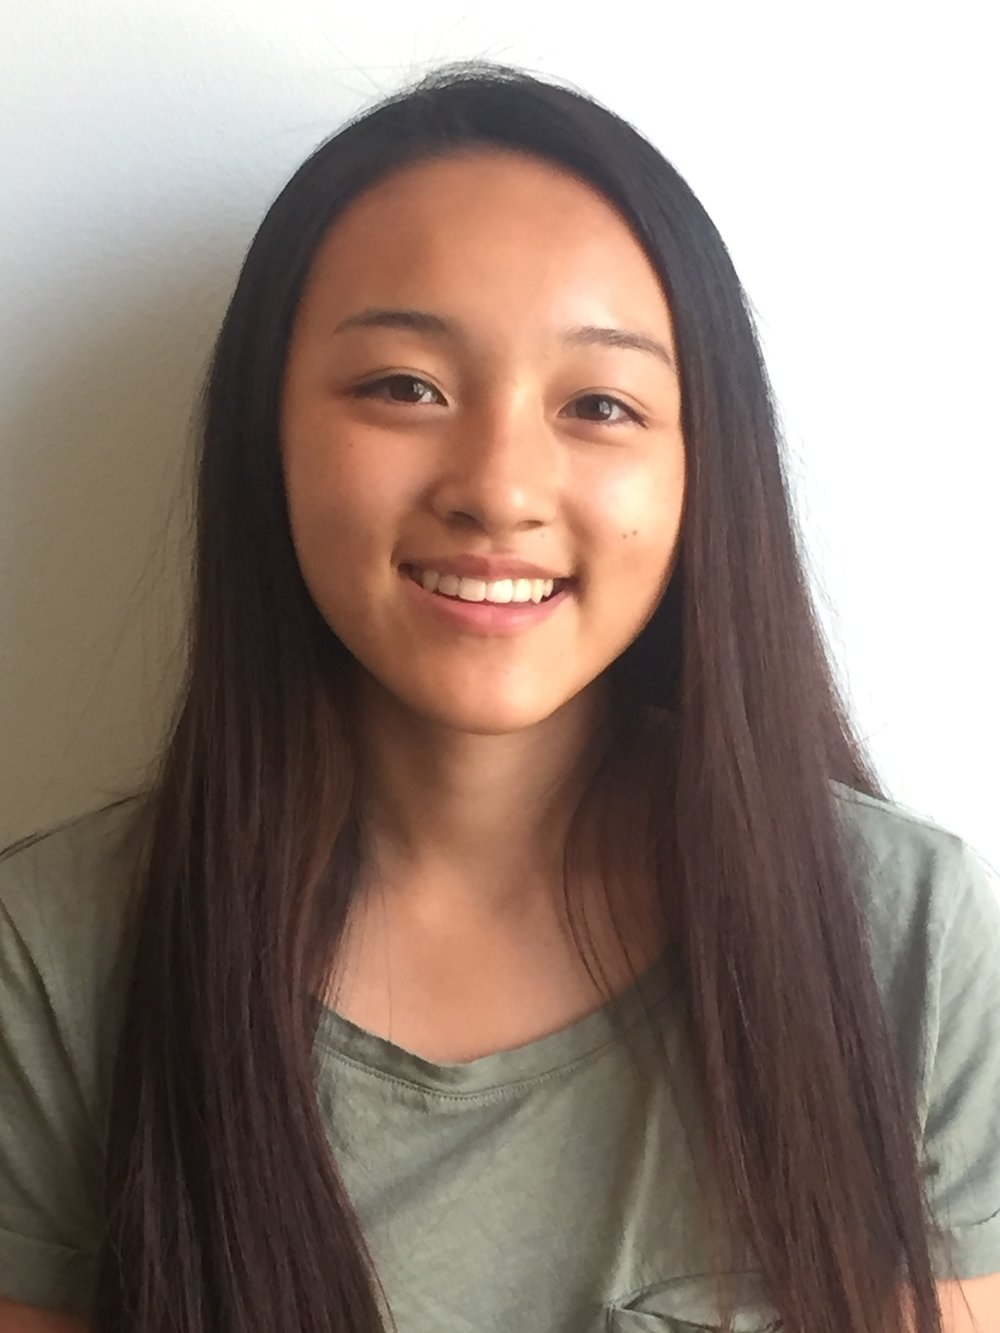 Madelyn  - High school student charles wright acad.  - igem member 2018